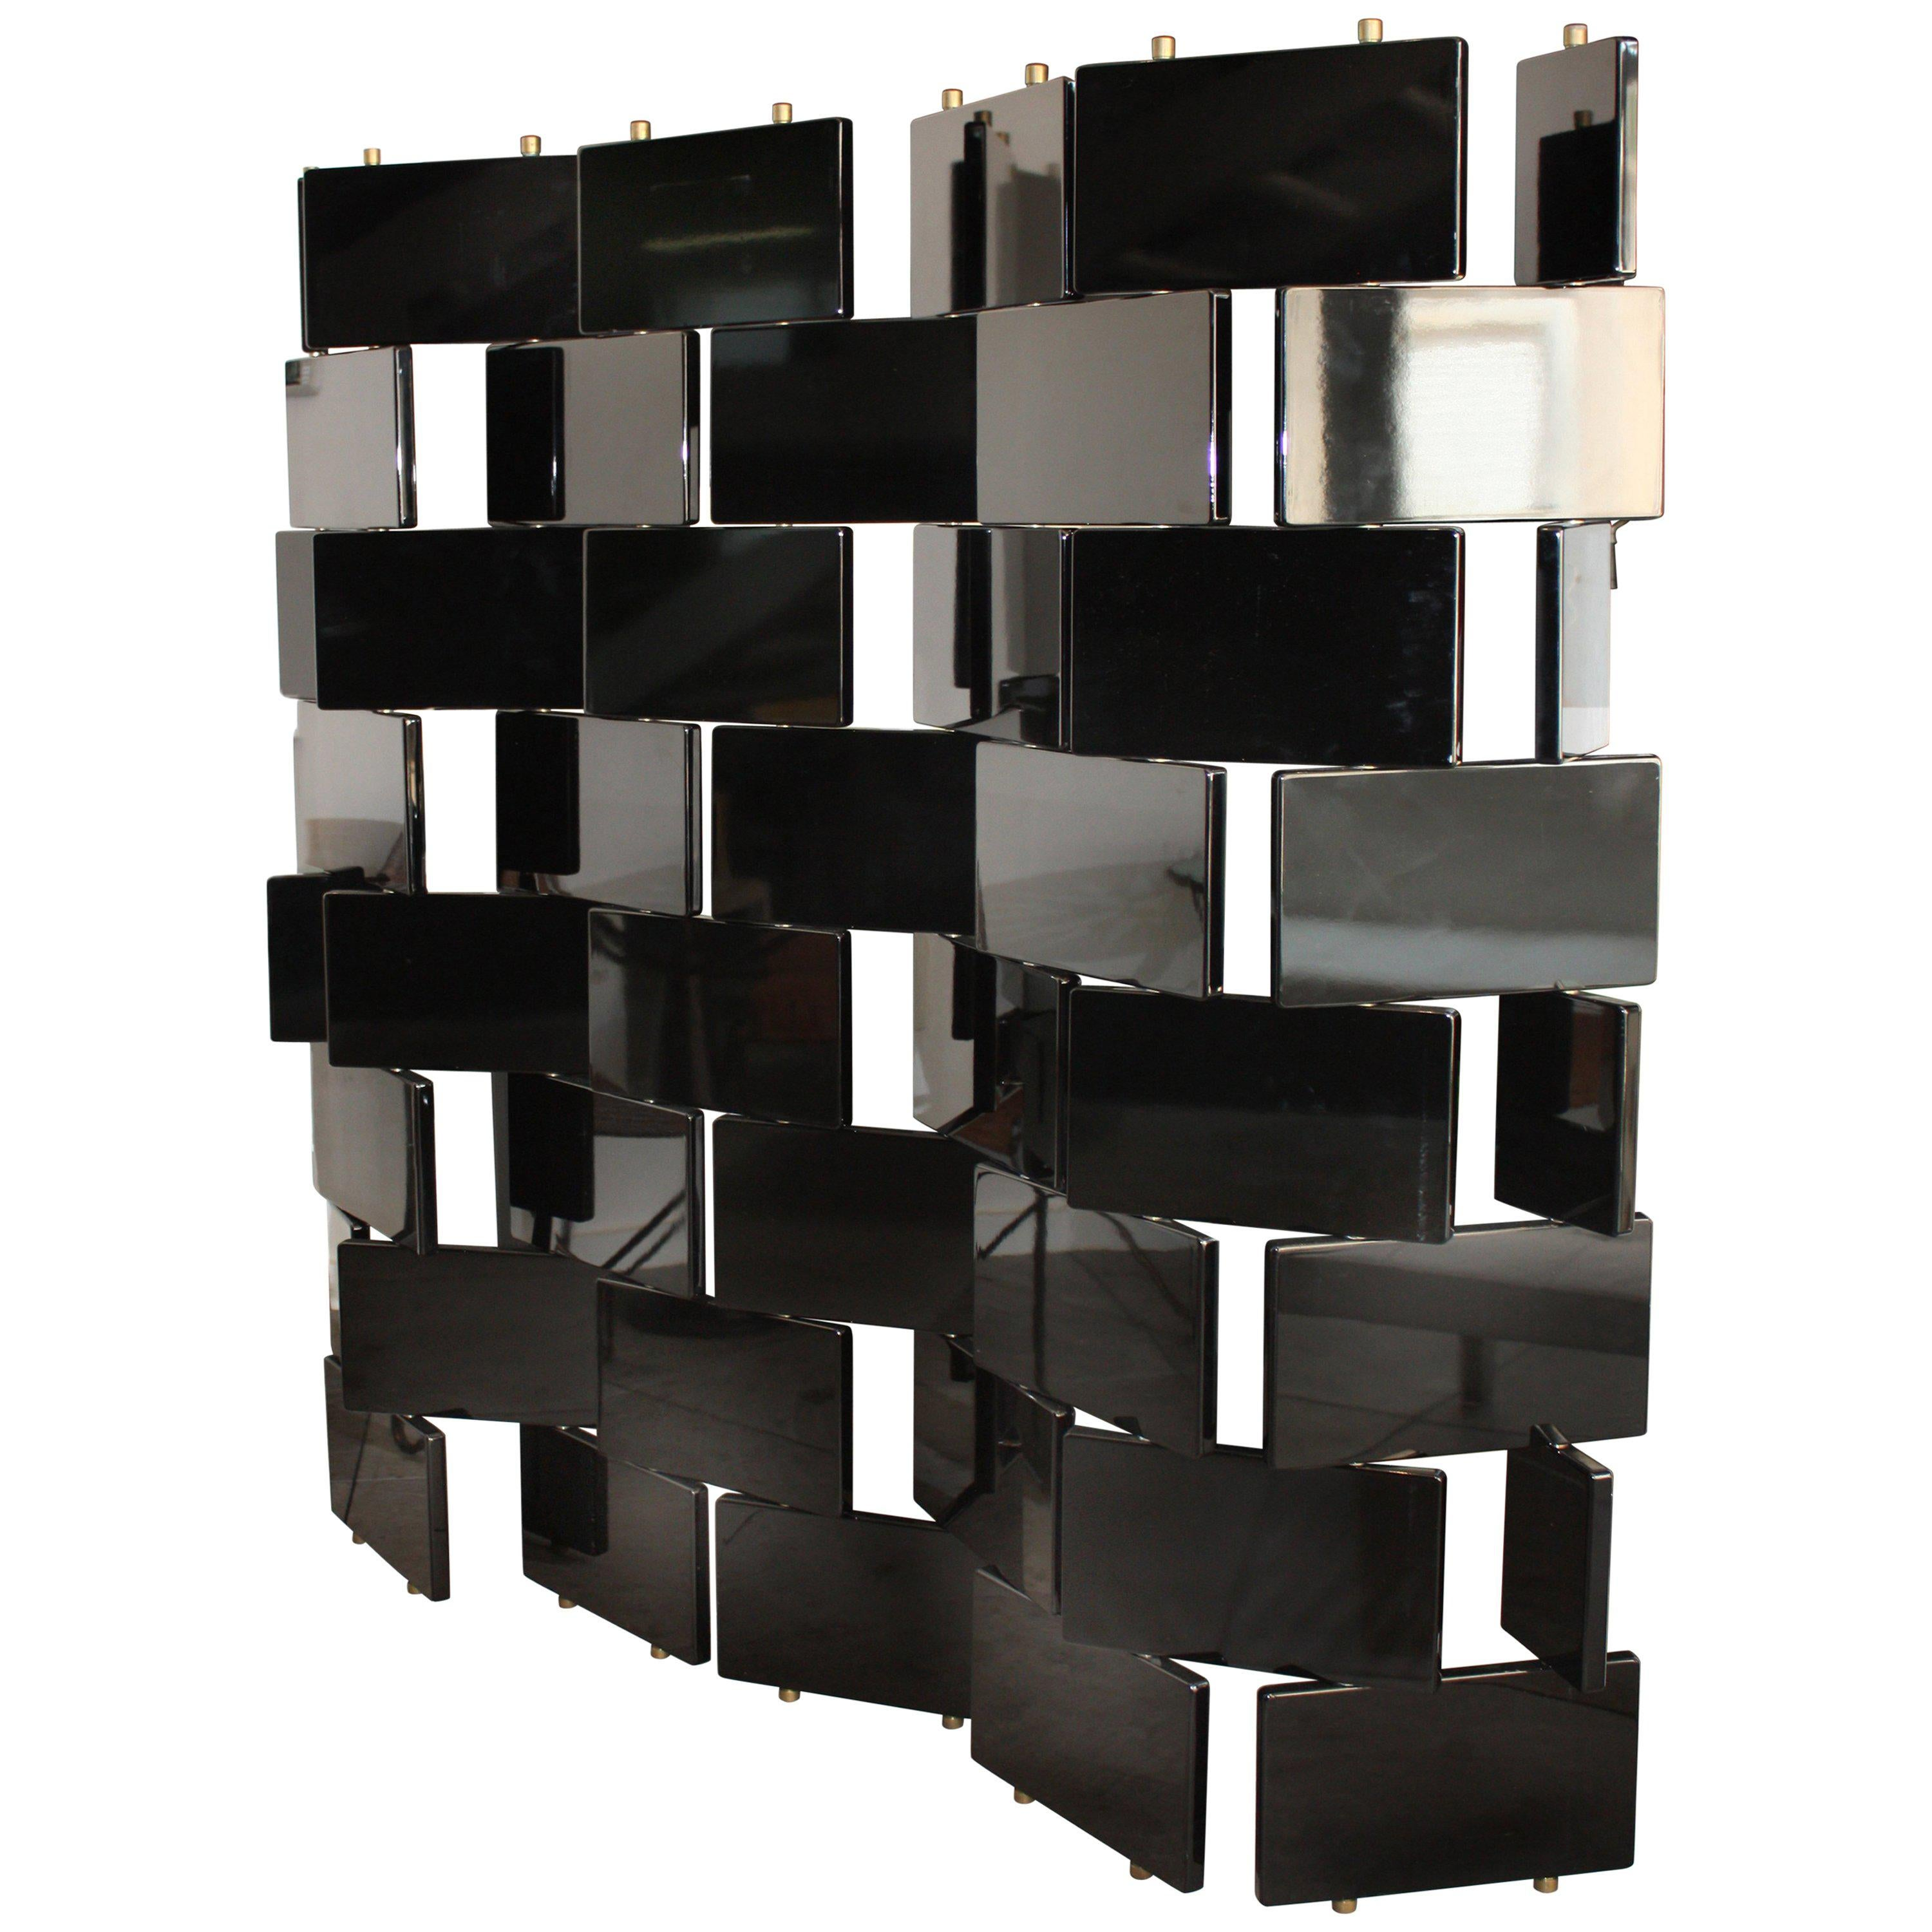 Eileen Gray Style Brick Screen, Black Lacquer Room Divider